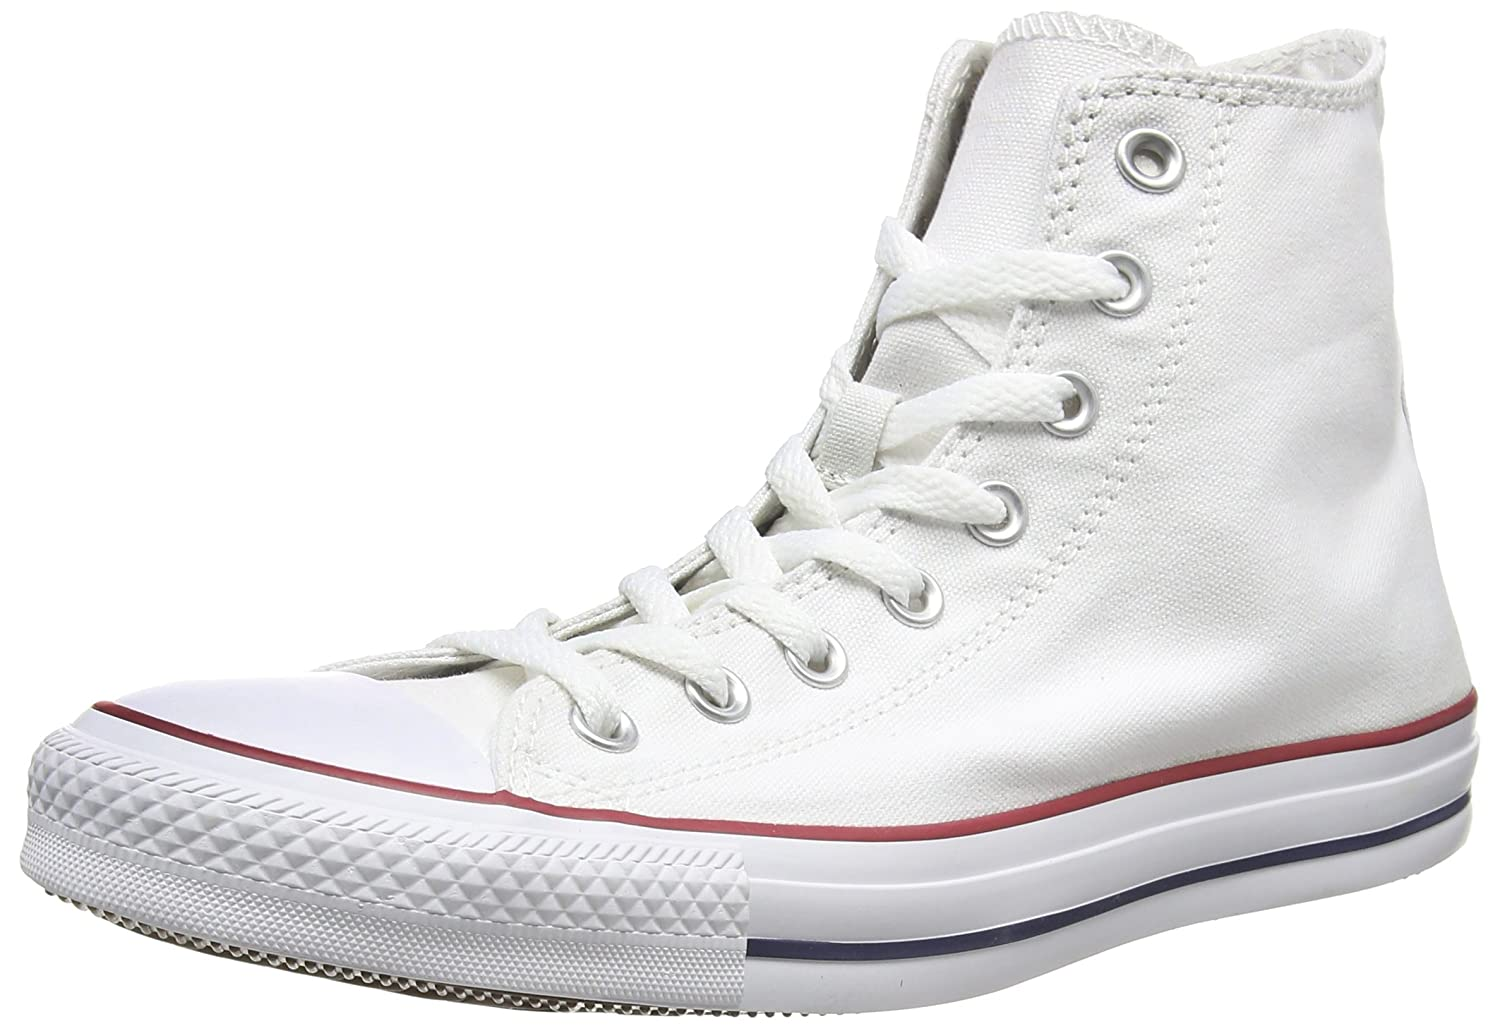 Converse Chuck Taylor All Star Core Hi B00GXAJLCE 43 M EU / 11.5 B(M) US Women / 9.5 D(M) US Men|Optical White